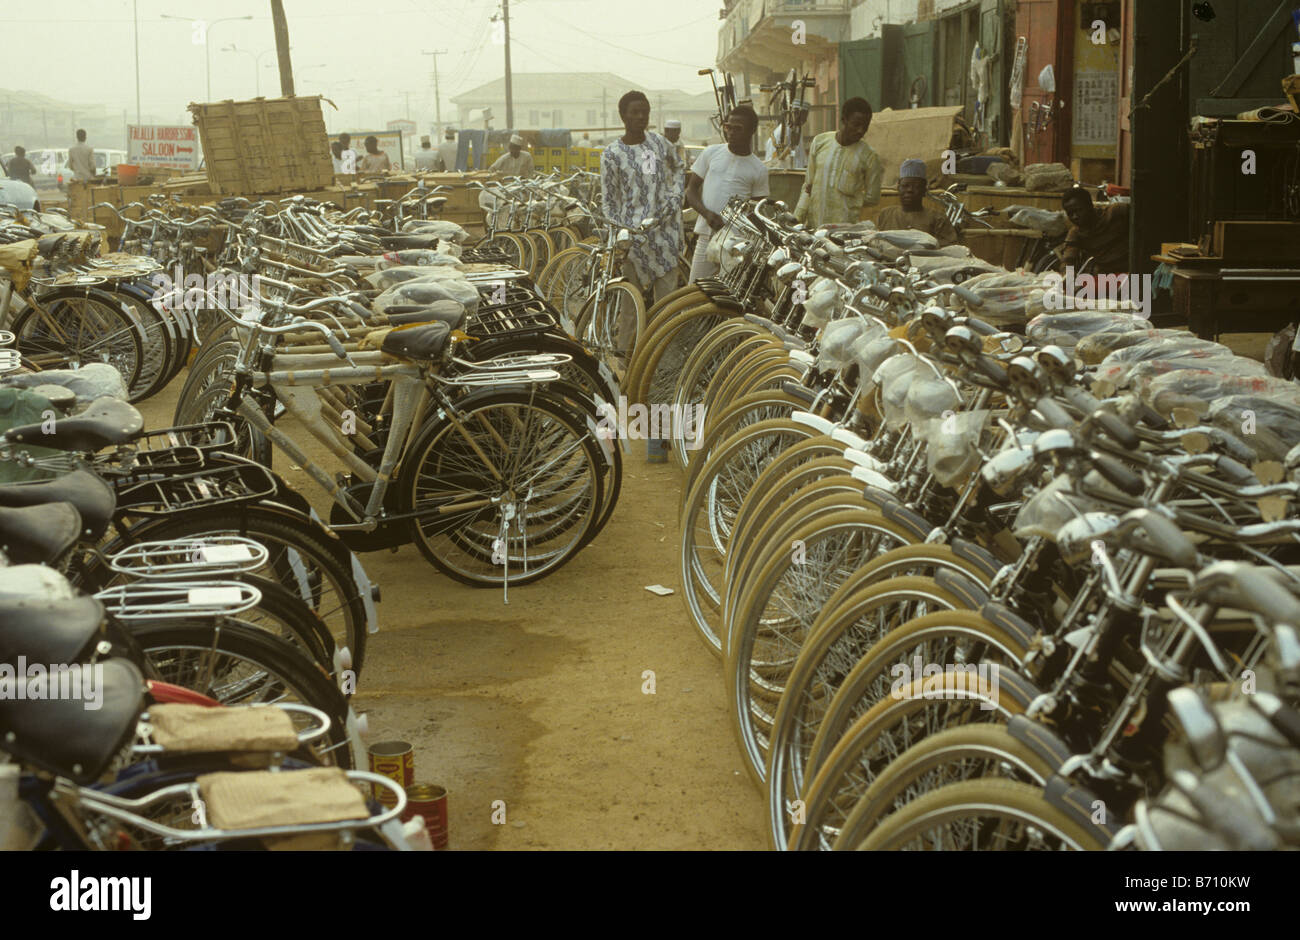 Bicycle sales on a street in Kano Nigeria during the dust storm caused by the hamatan 1980s - Stock Image